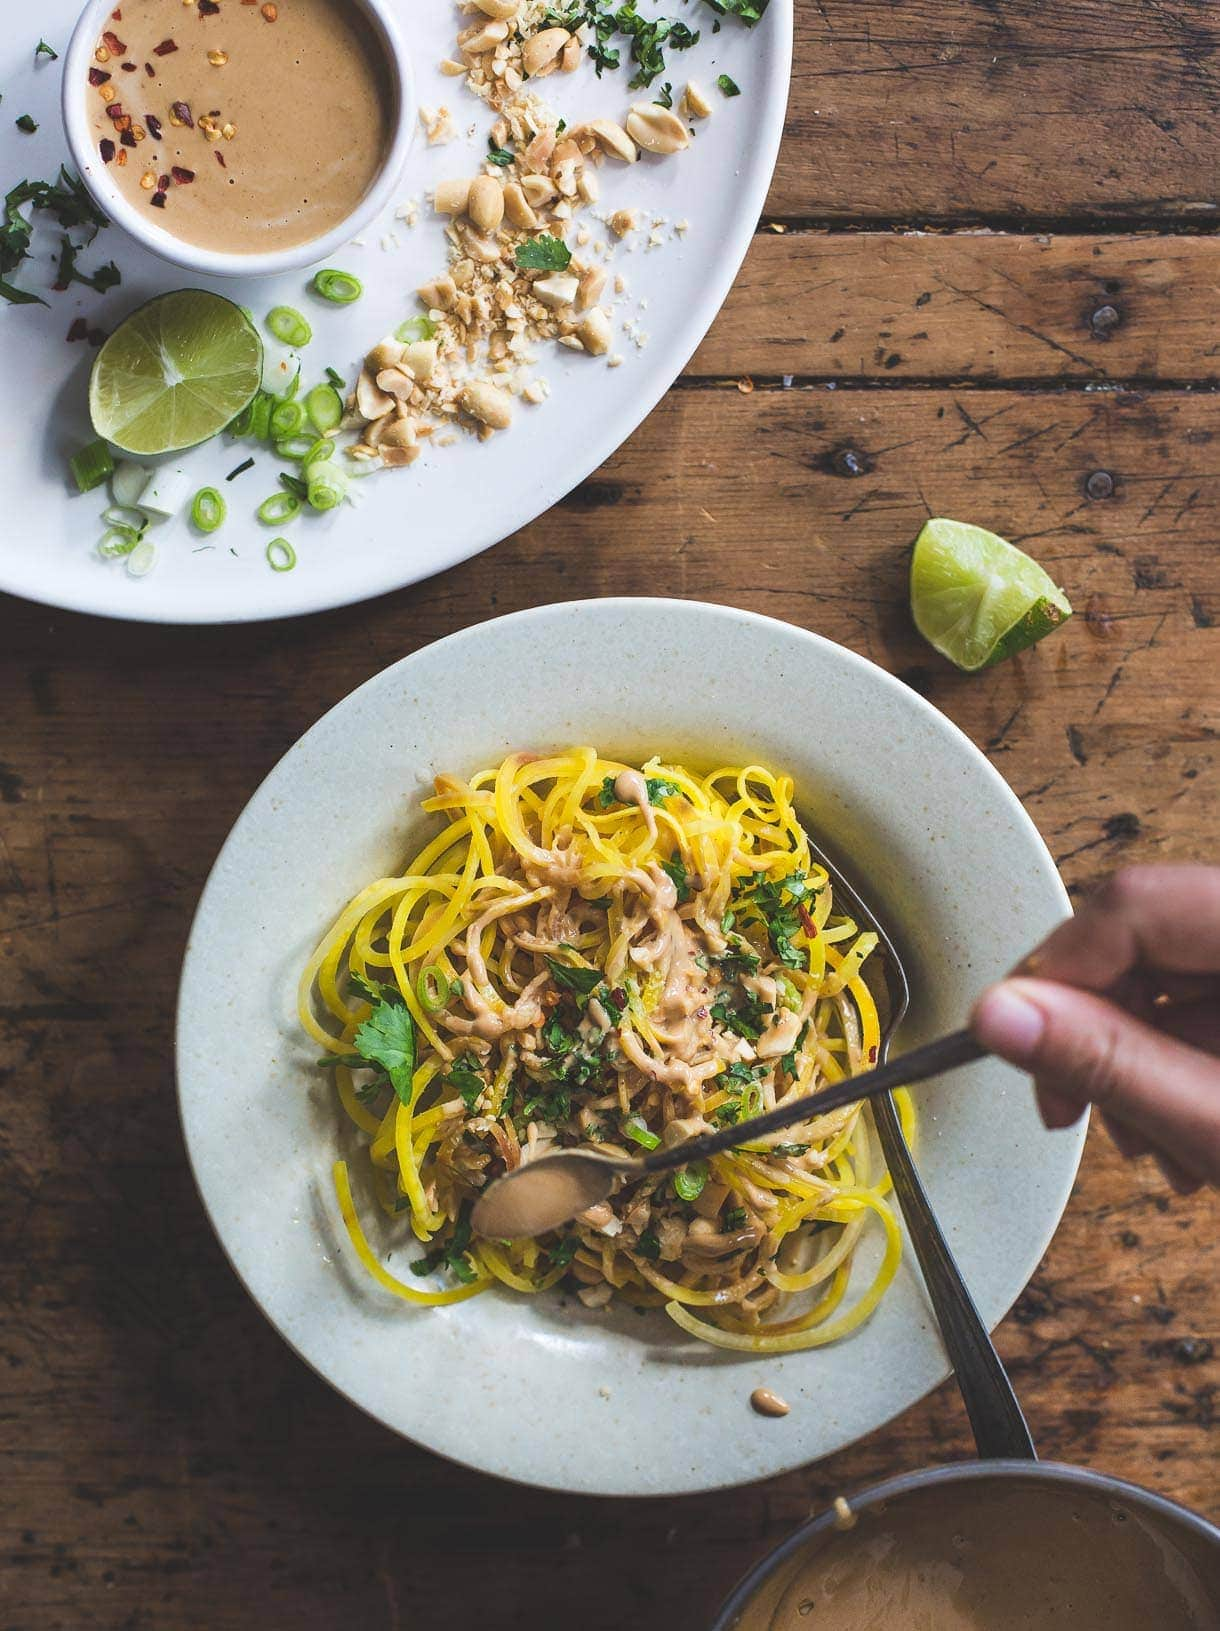 Golden Beet Noodles with Spicy Peanut Sauce {grain-free spiralized meal}